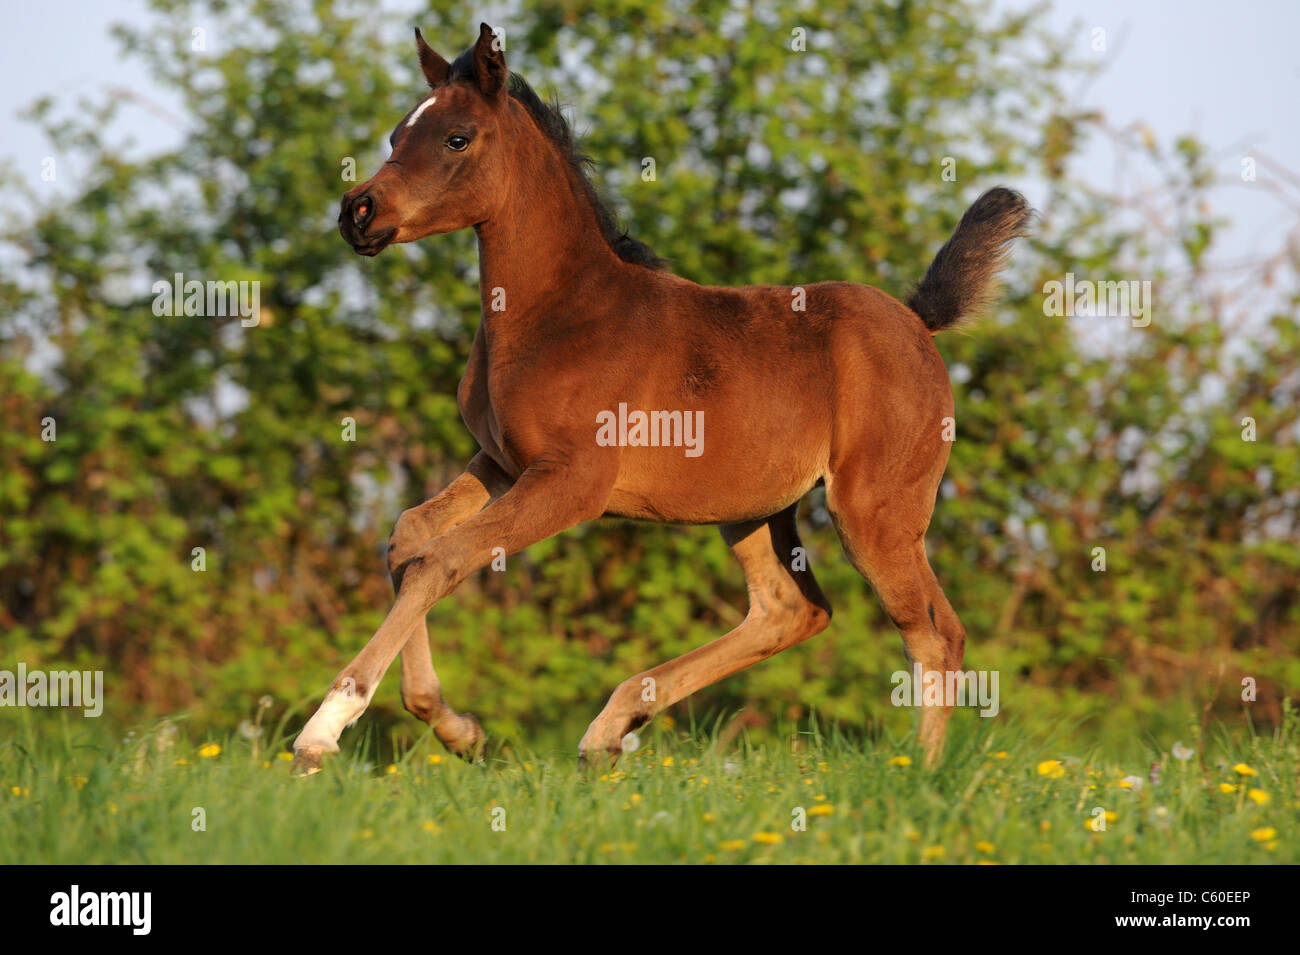 Purebred Arabian Horse (Equus ferus caballus). Bay foal in a gallop on a meadow. - Stock Image